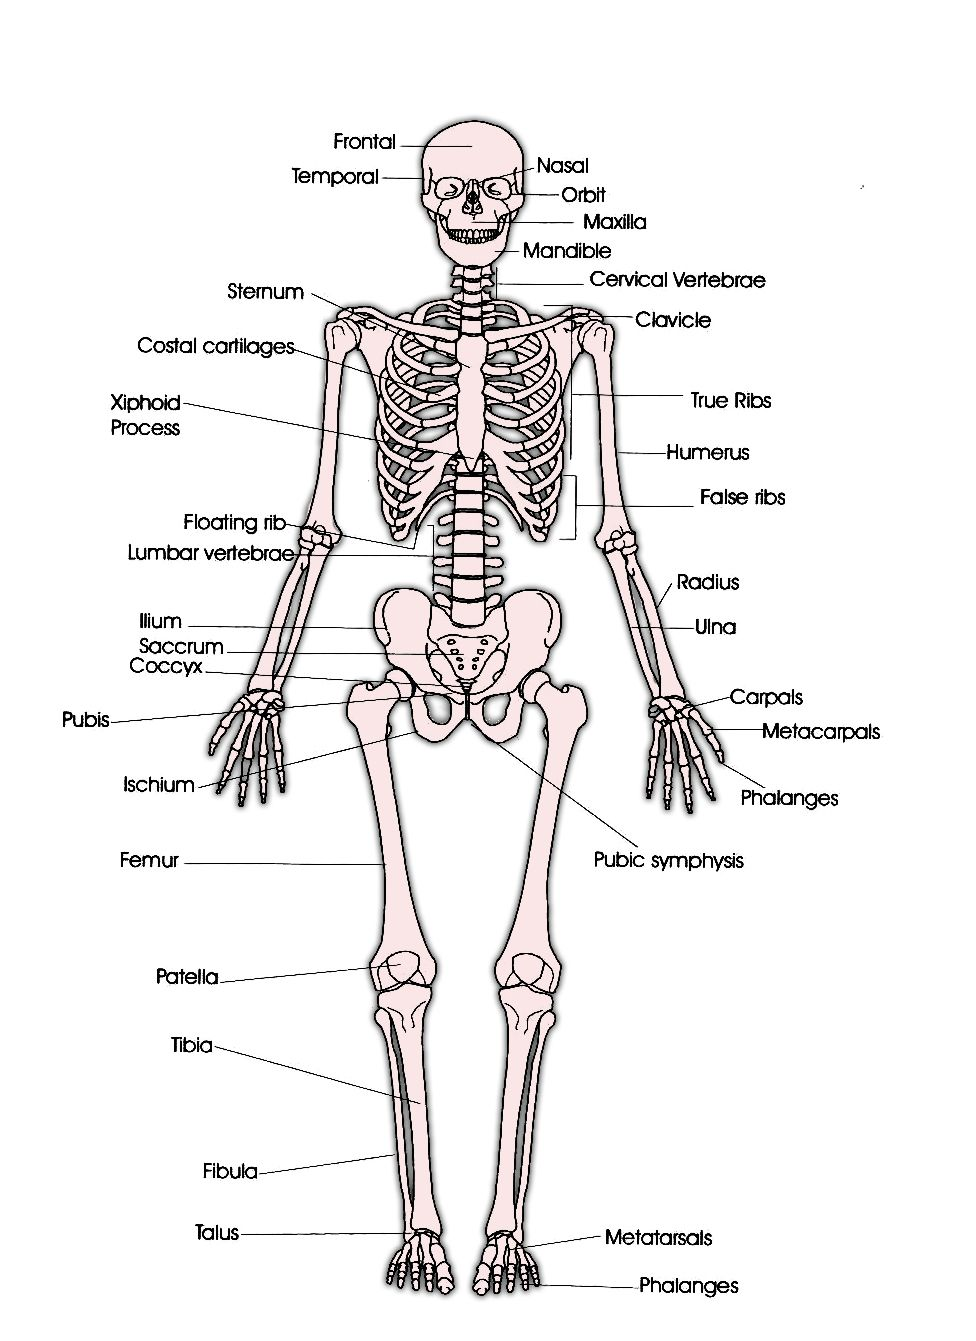 Human Skull Bones Diagram Labeled Photo Control Wiring Skeletal System Diagrams Skeleton The Includes All Of And Joints In Body Description From Brainanatomy Tk